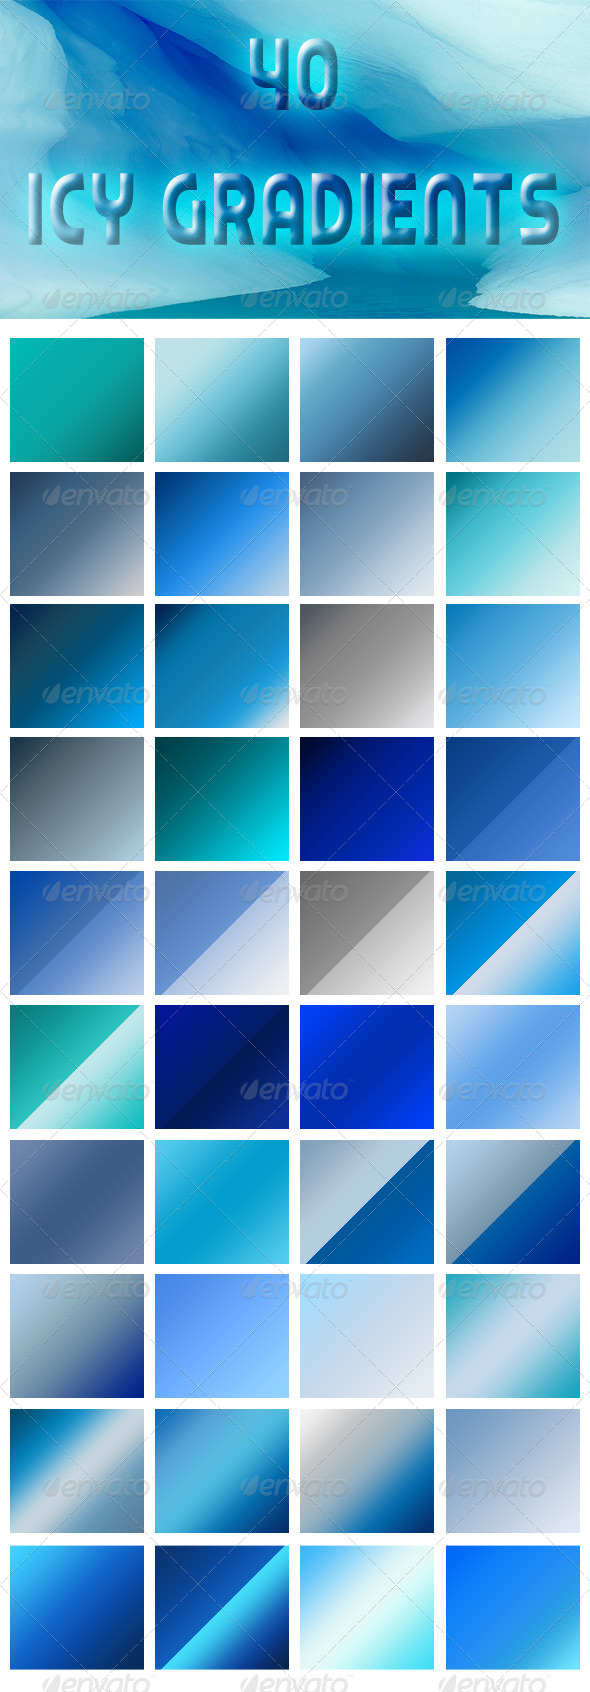 GraphicRiver 40 Icy Gradients 5217550